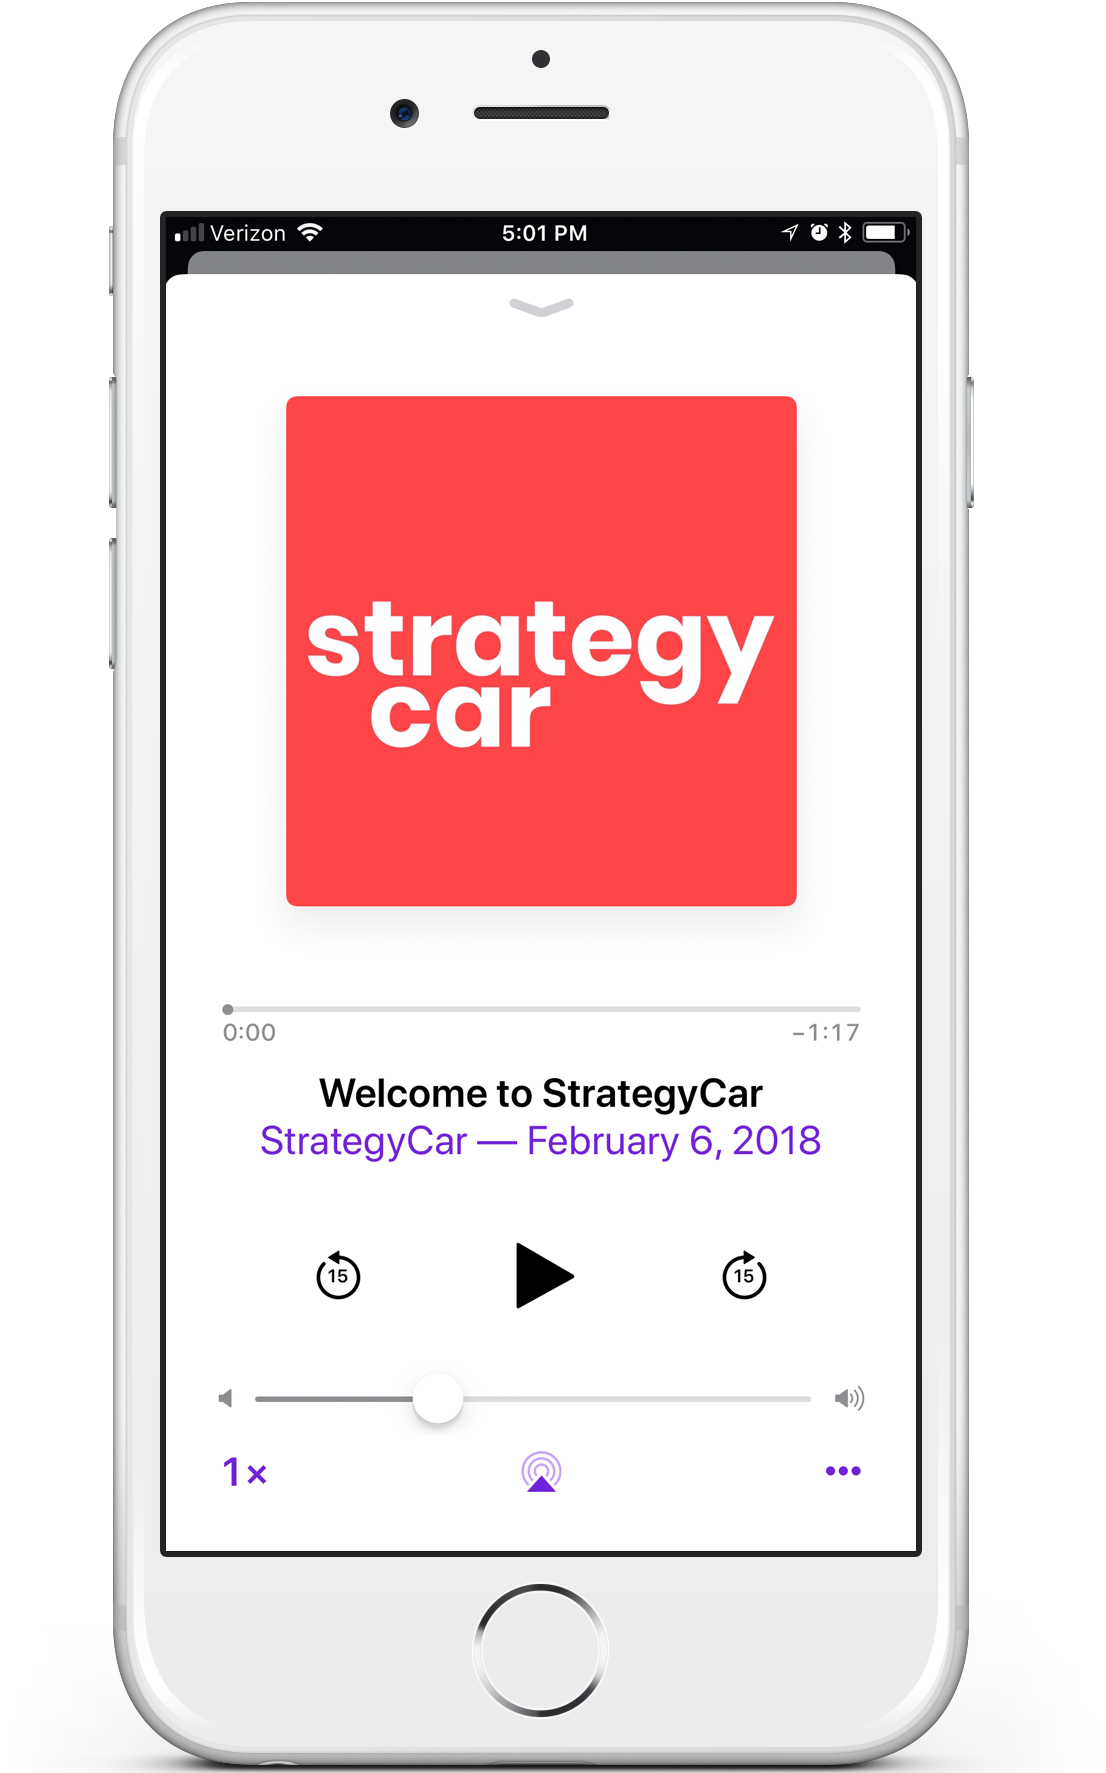 StrategyCar podcast screen on iPhone